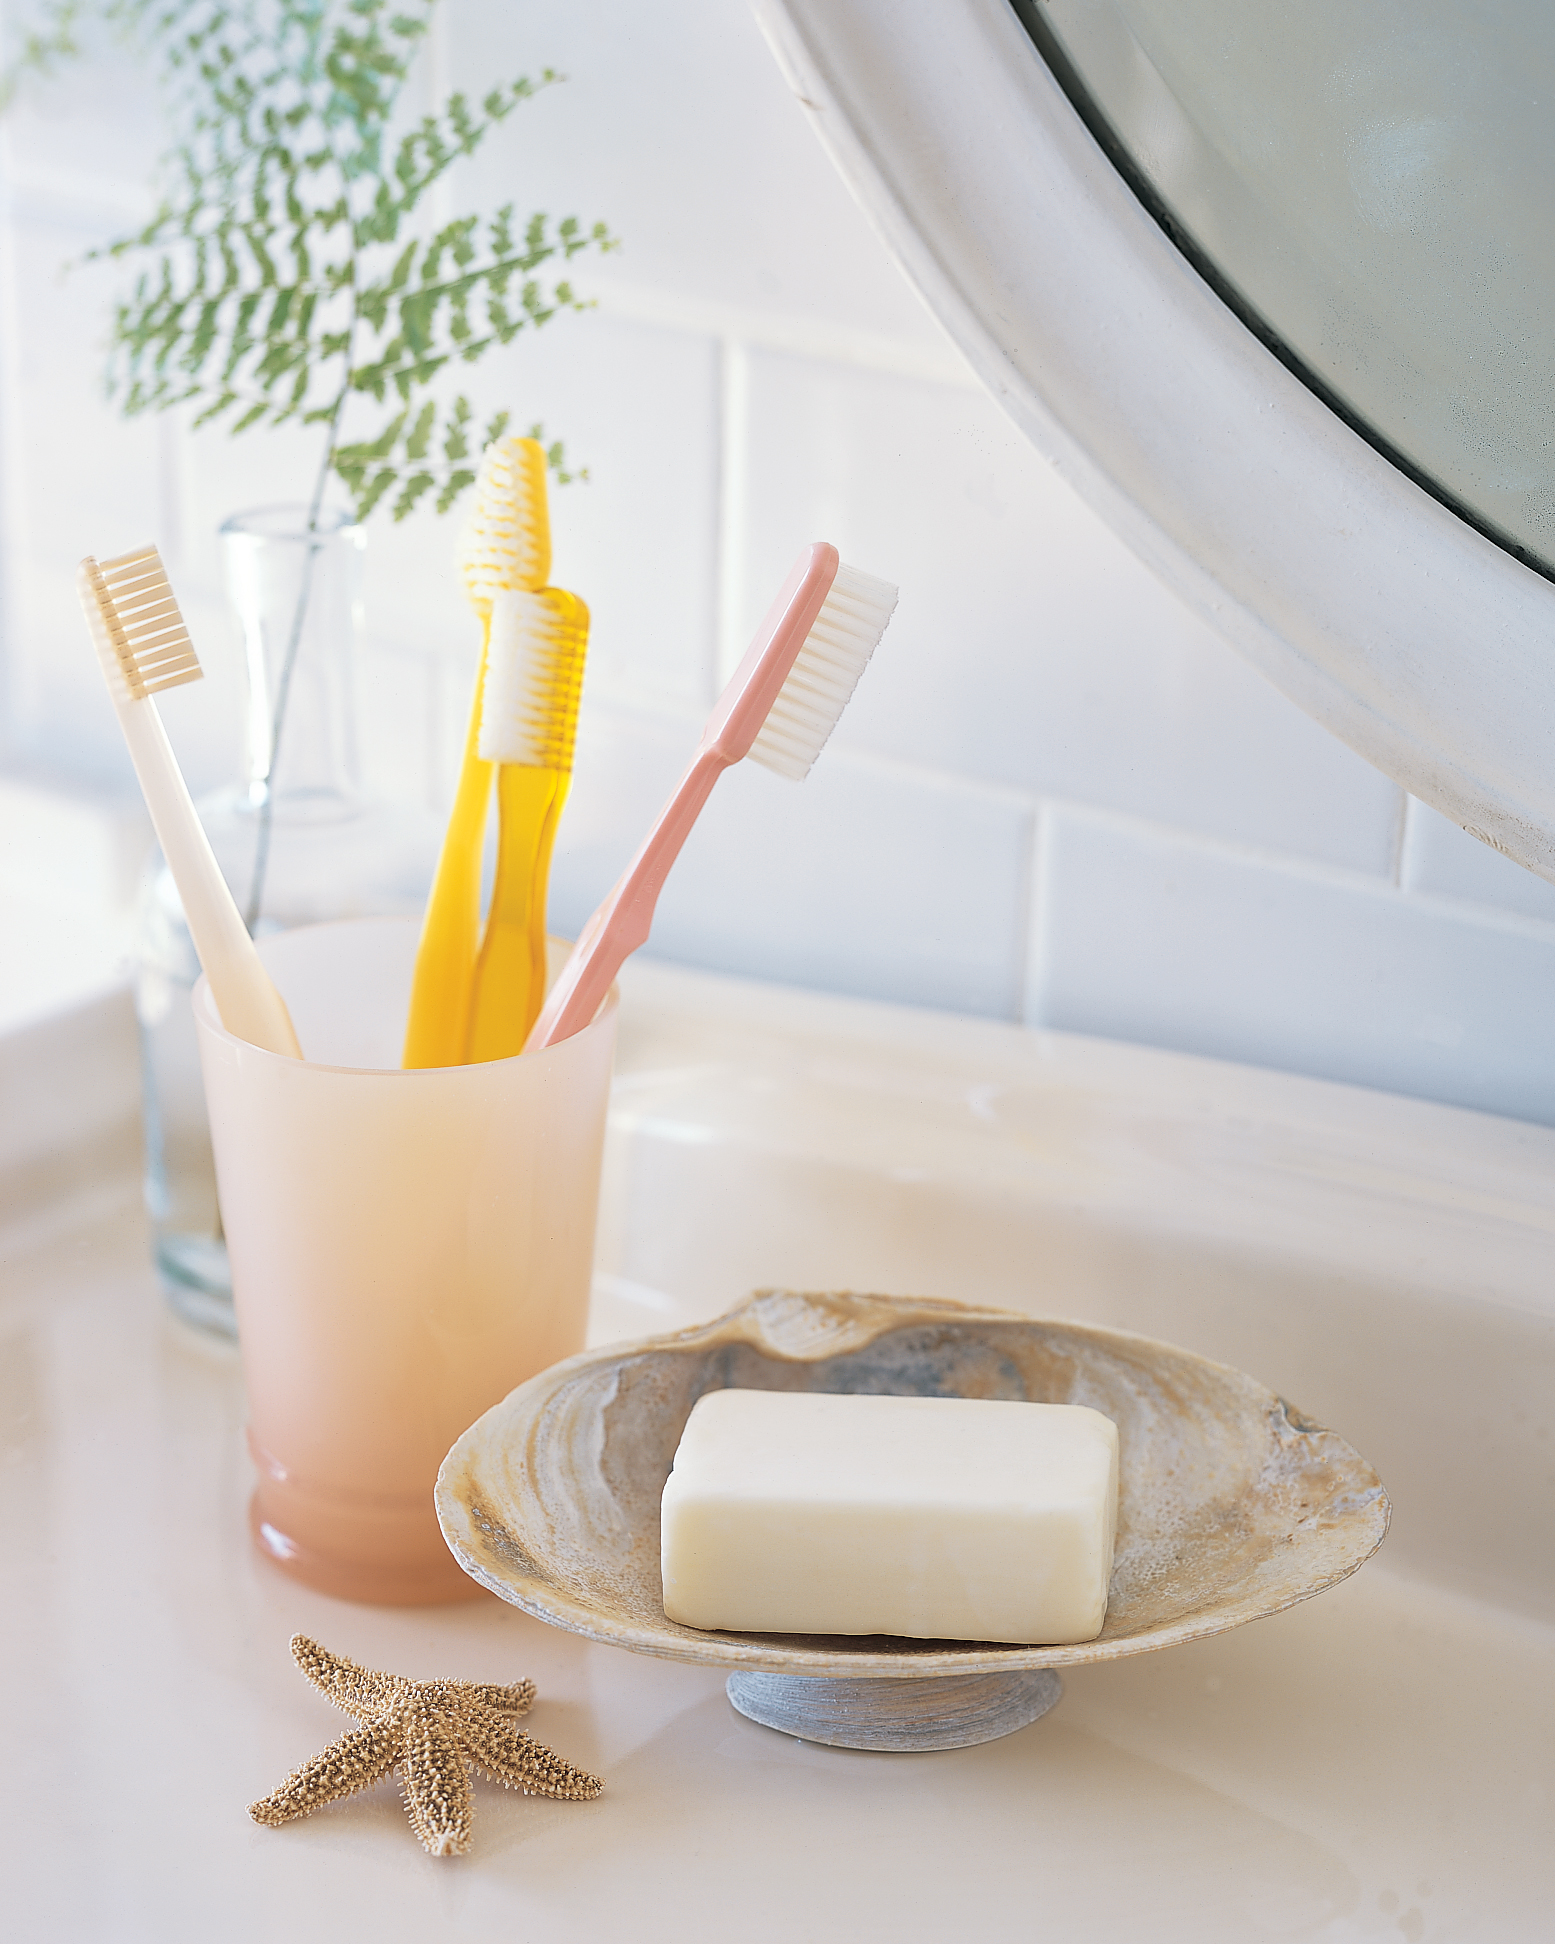 seashell soap dish in bathroom